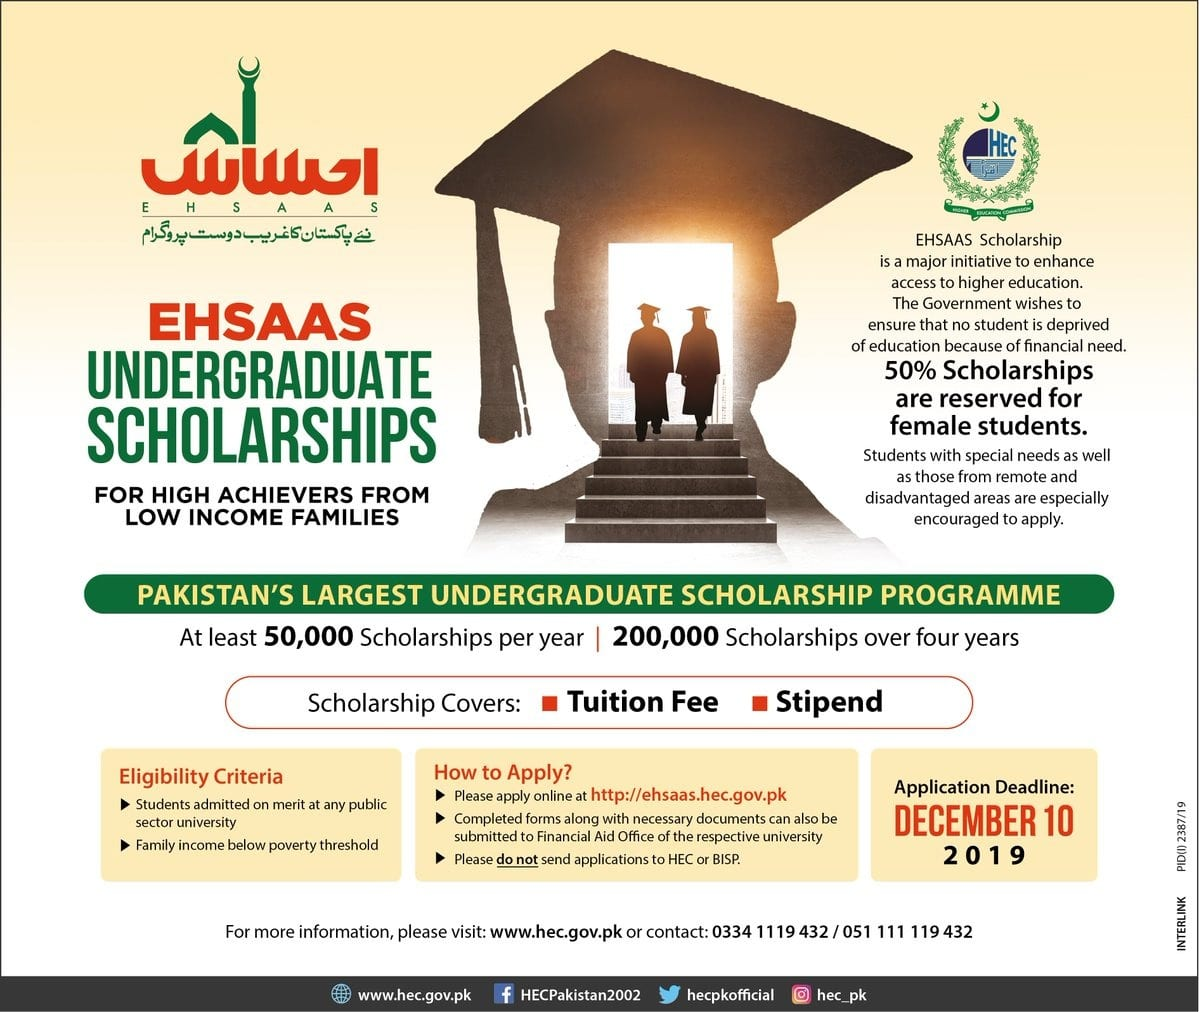 ehsaaundergraduate scholarship program 2019